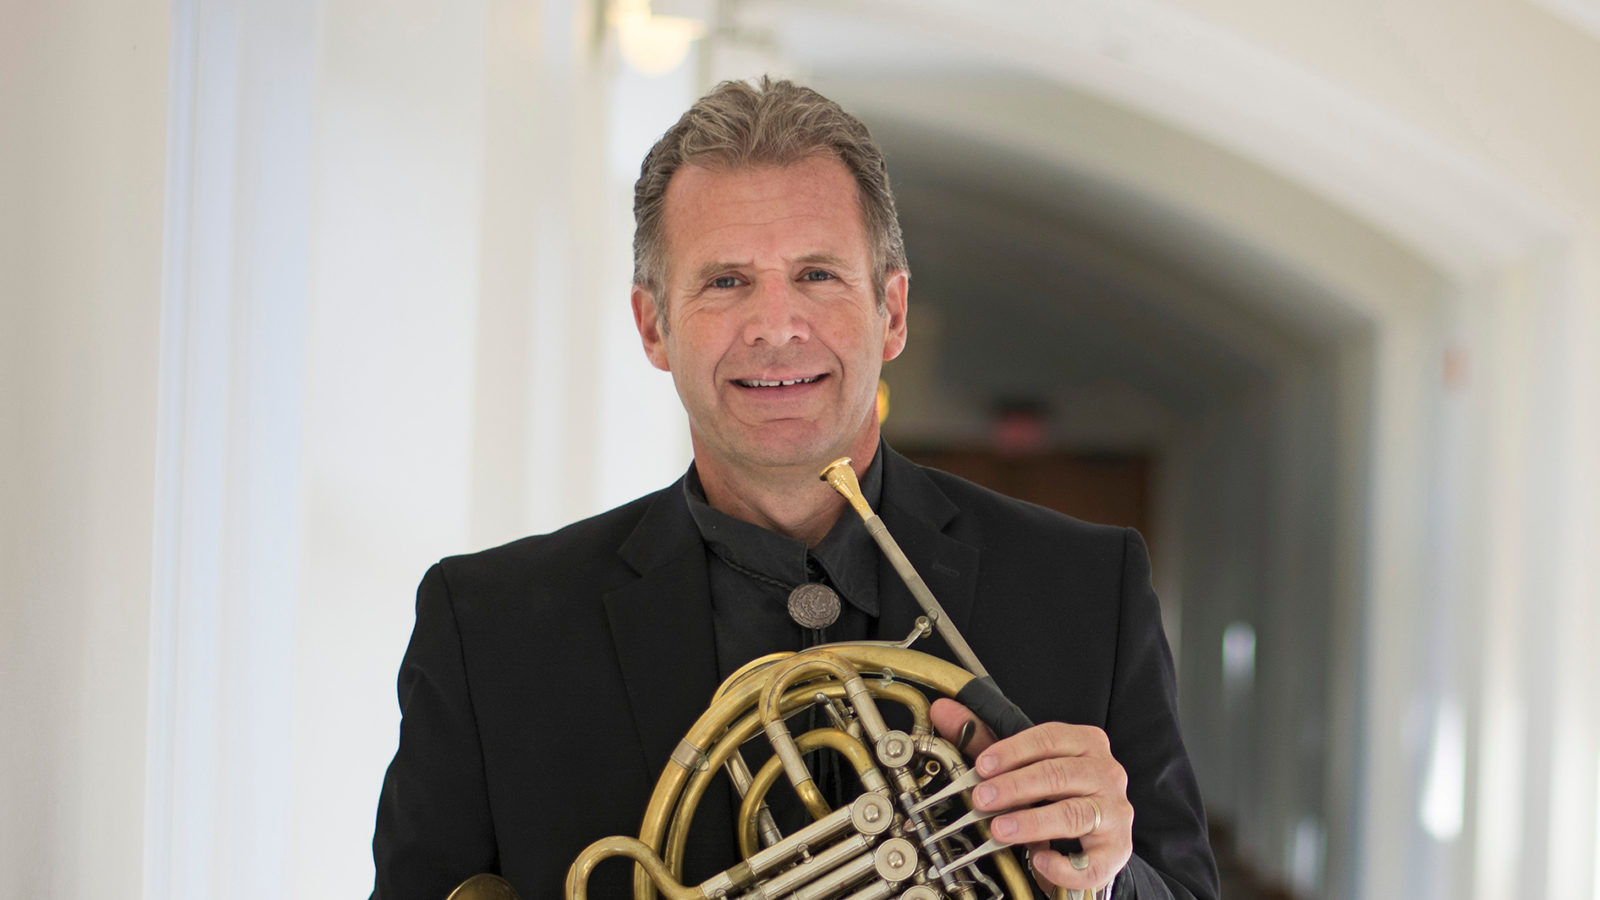 Director Gregory Miller with his horn.